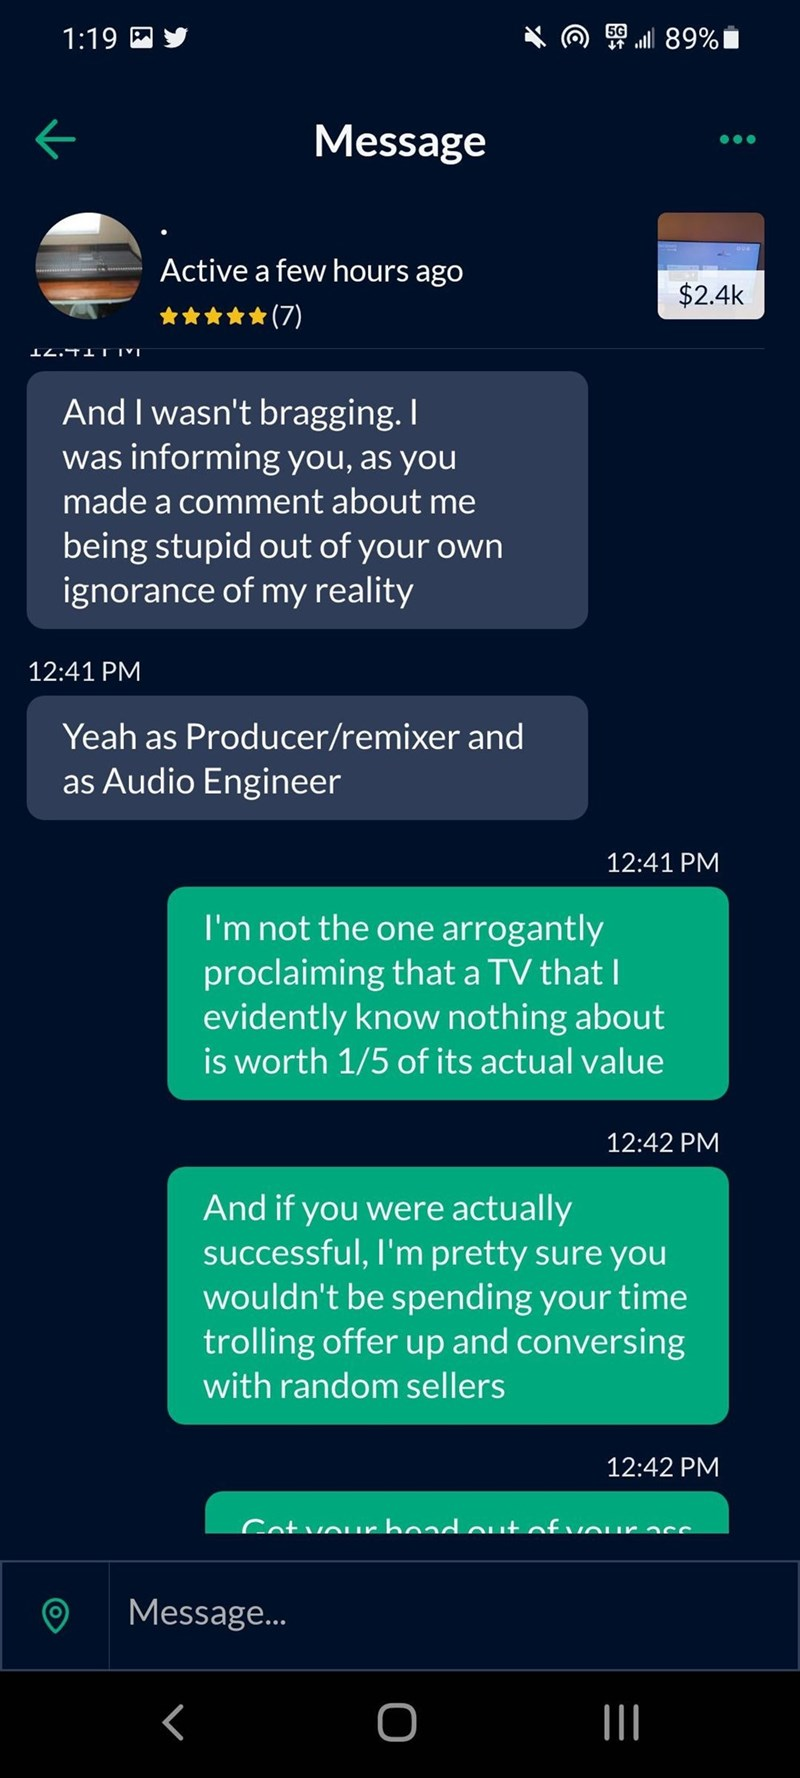 Font - 1:19 E Y 50 ll 89% Message Active a few hours ago $2.4k :(7) 12.T1 IM And I wasn't bragging. I was informing you, as you made a comment about me being stupid out of your own ignorance of my reality 12:41 PM Yeah as Producer/remixer and as Audio Engineer 12:41 PM I'm not the one arrogantly proclaiming that a TV that I evidently know nothing about is worth 1/5 of its actual value 12:42 PM And if you were actually successful, l'm pretty sure you wouldn't be spending your time trolling offer